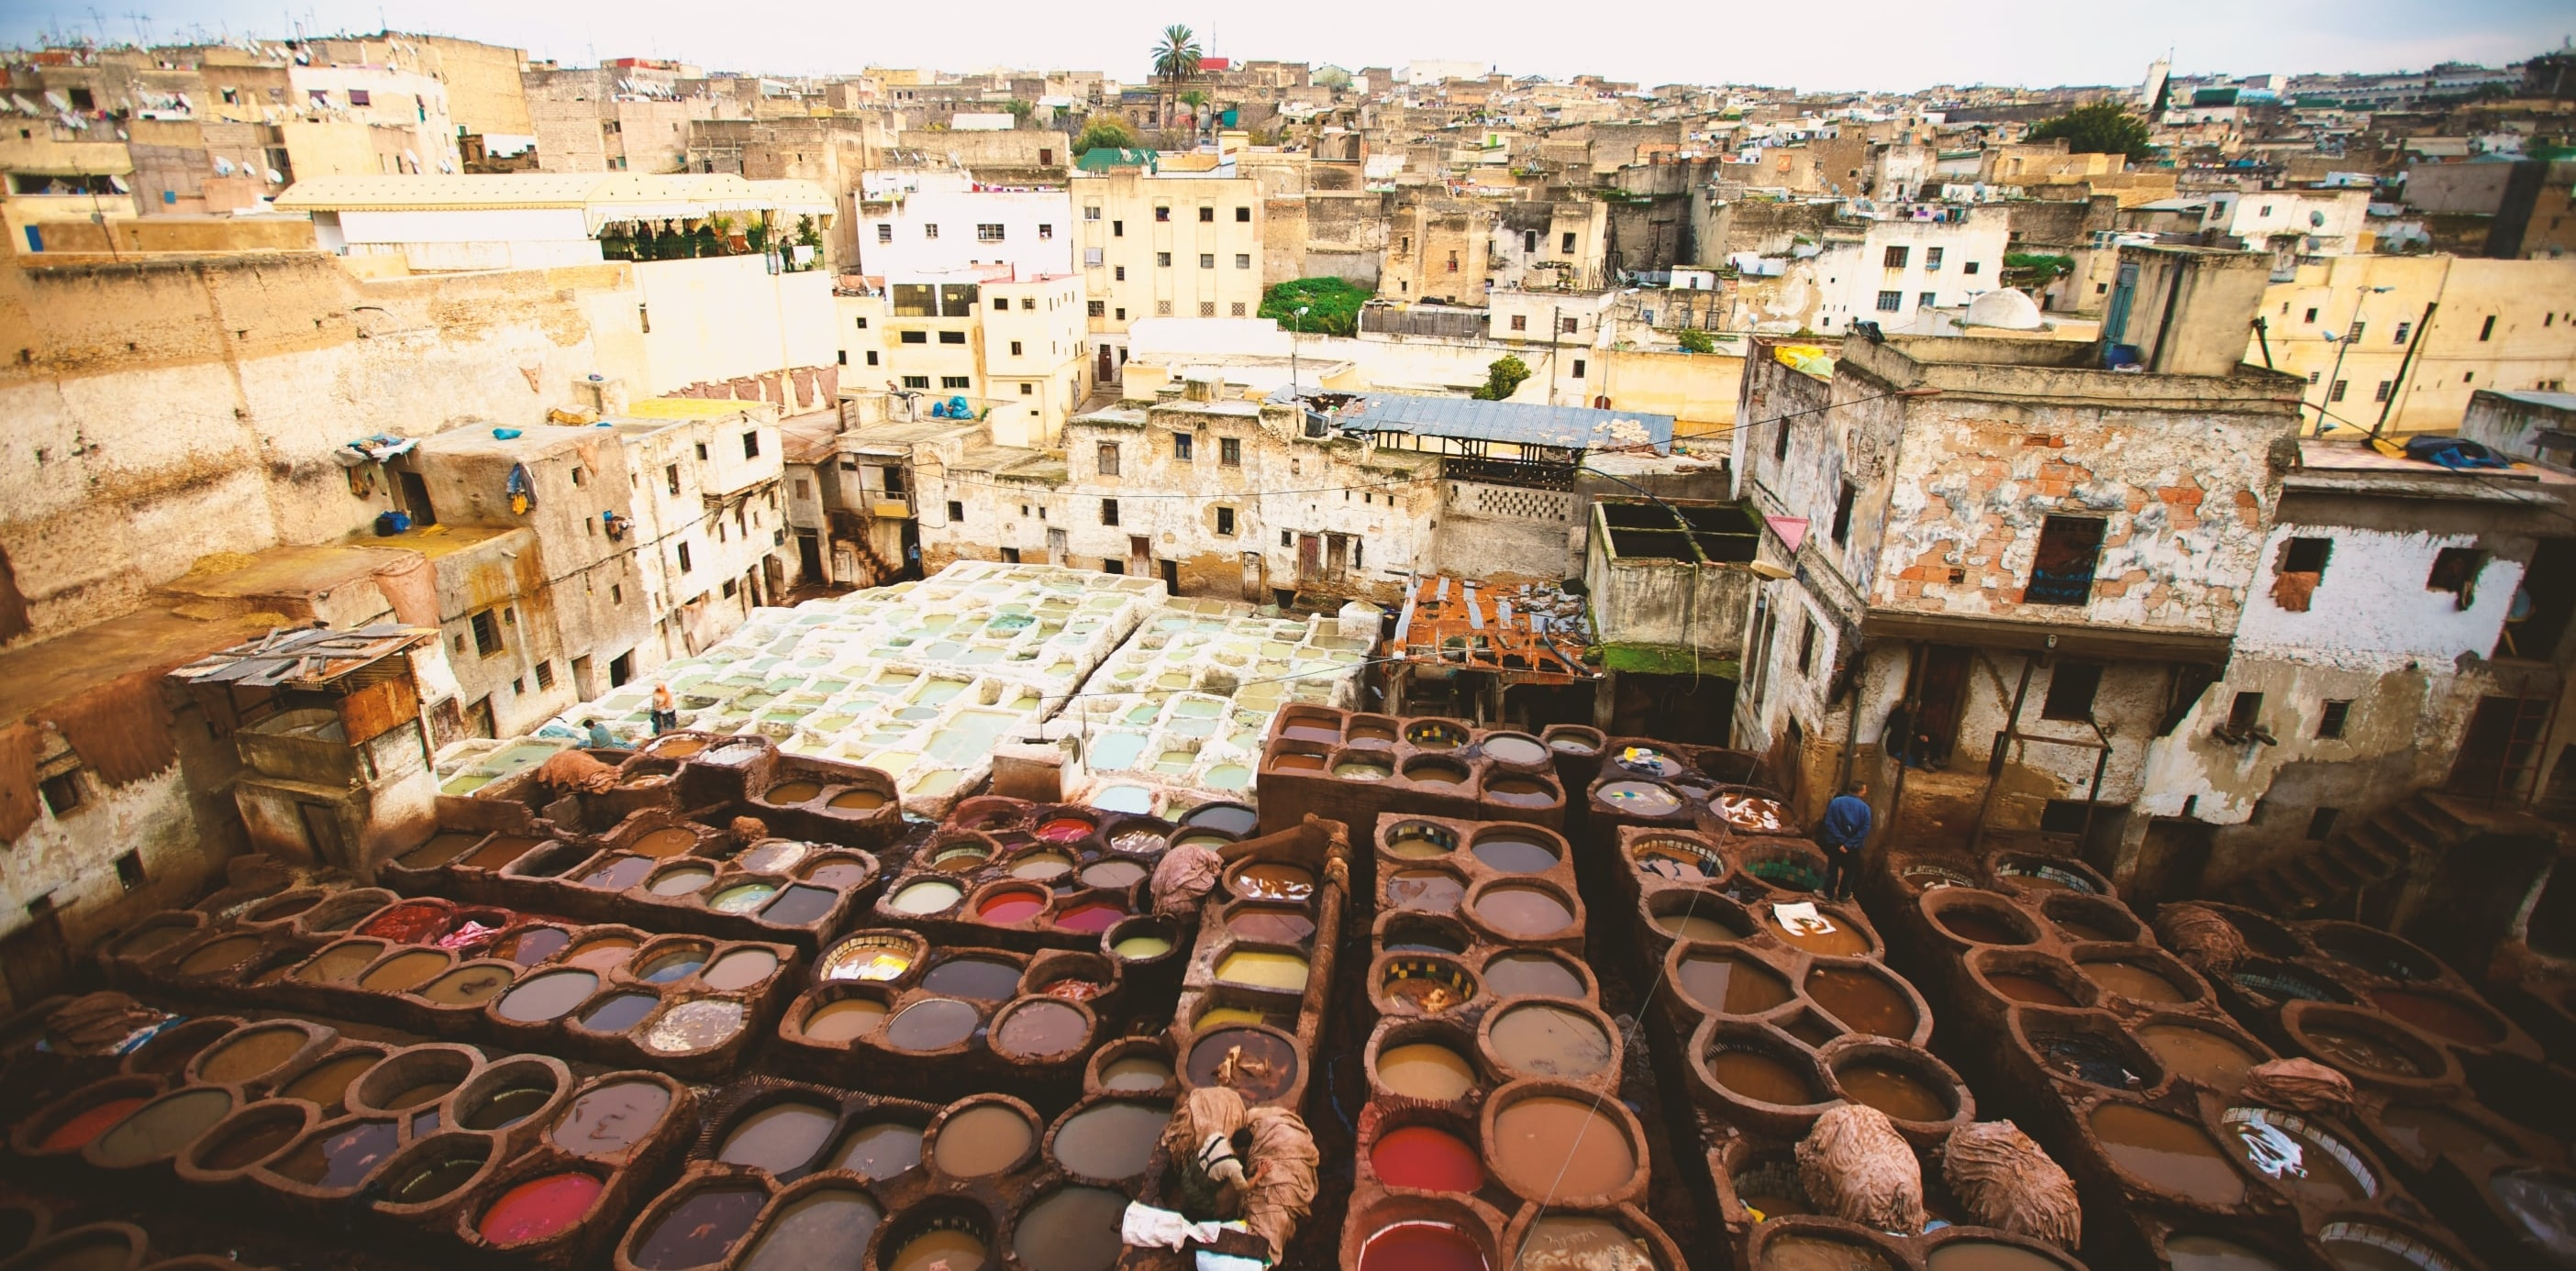 Build your trip in Morocco